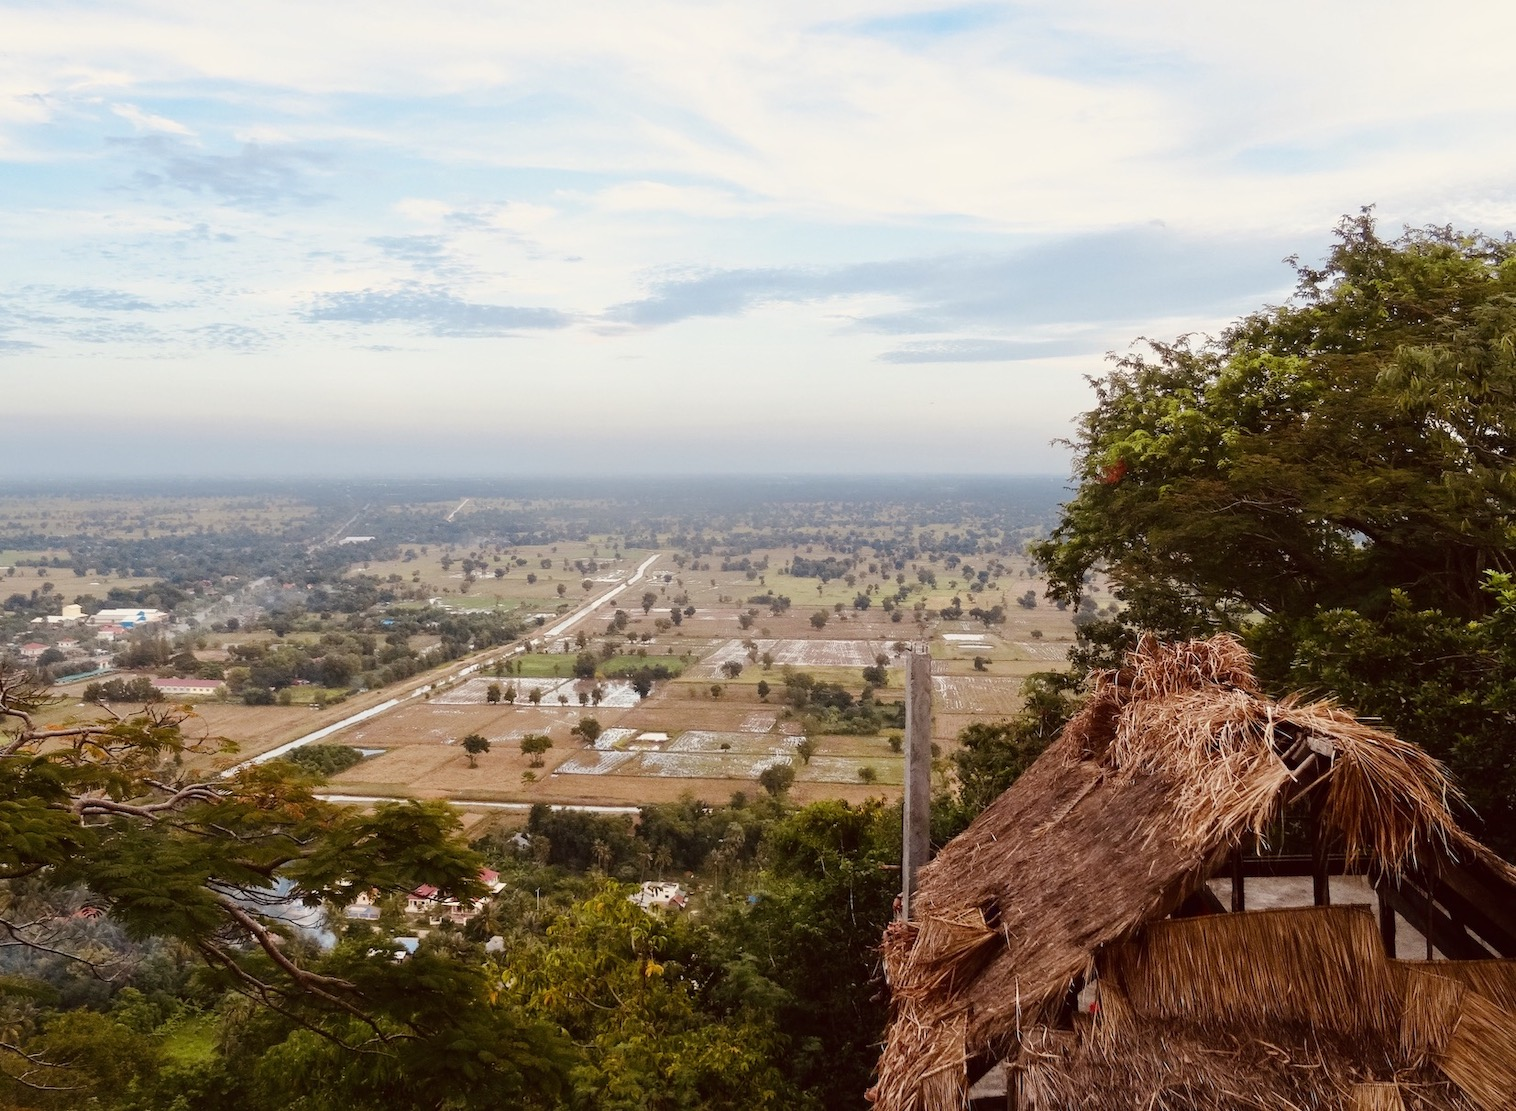 Phnom Sampeau Mountain Battambang.